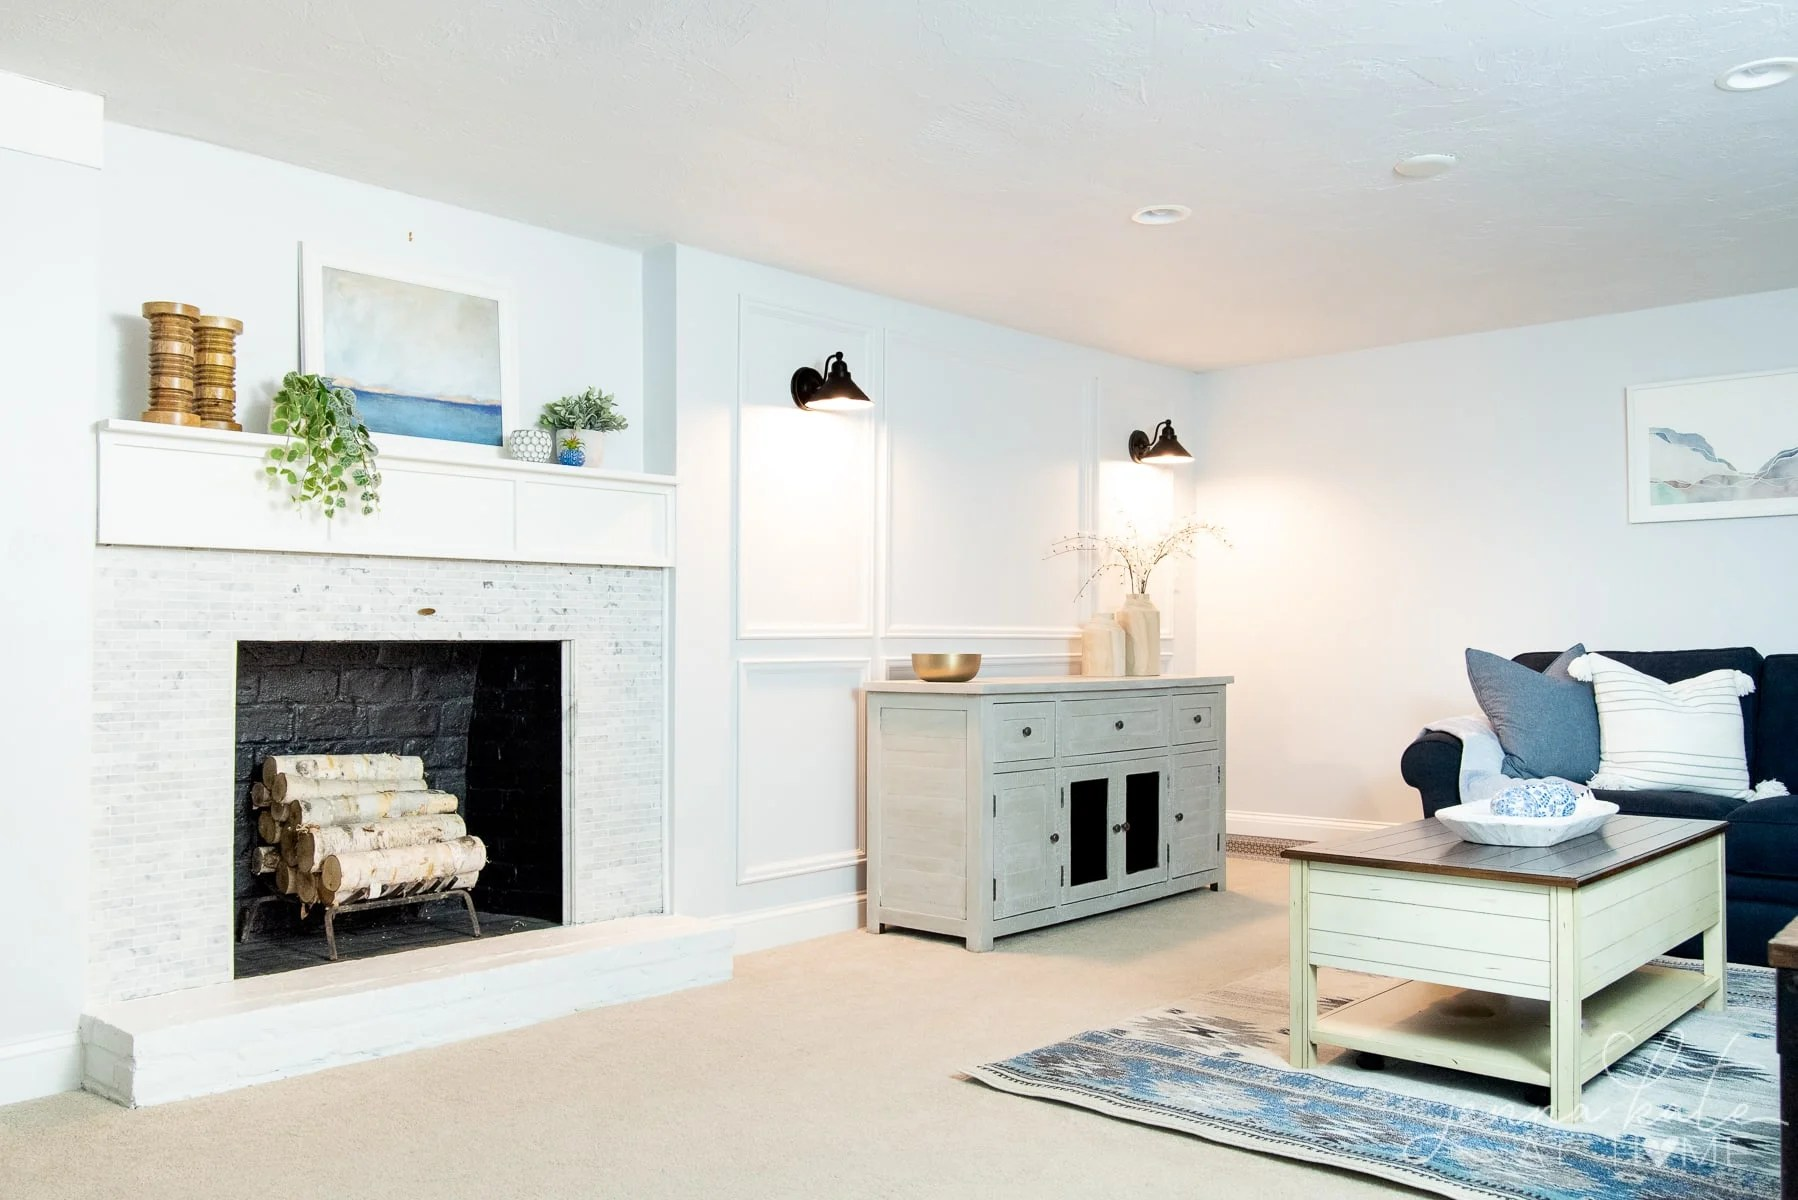 Behr Reflecting pool is a light blue gray petfect for a basement